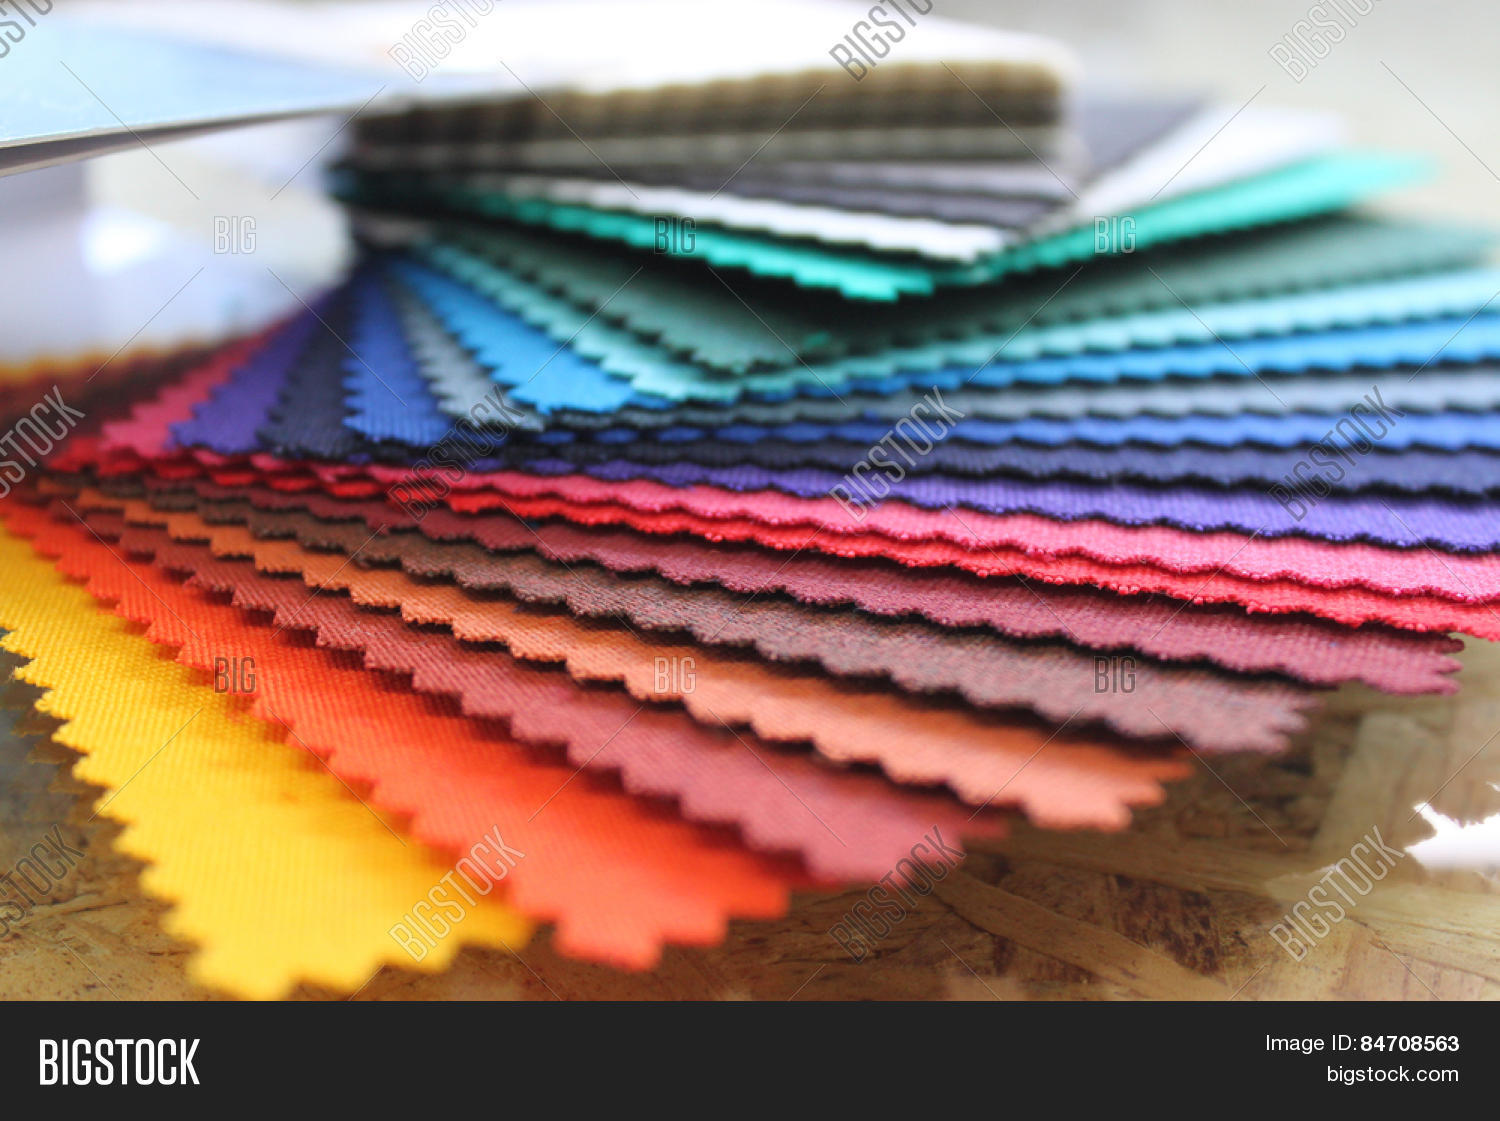 Rainbow Book Cover Material : Fabric rainbow color swatch book image photo bigstock